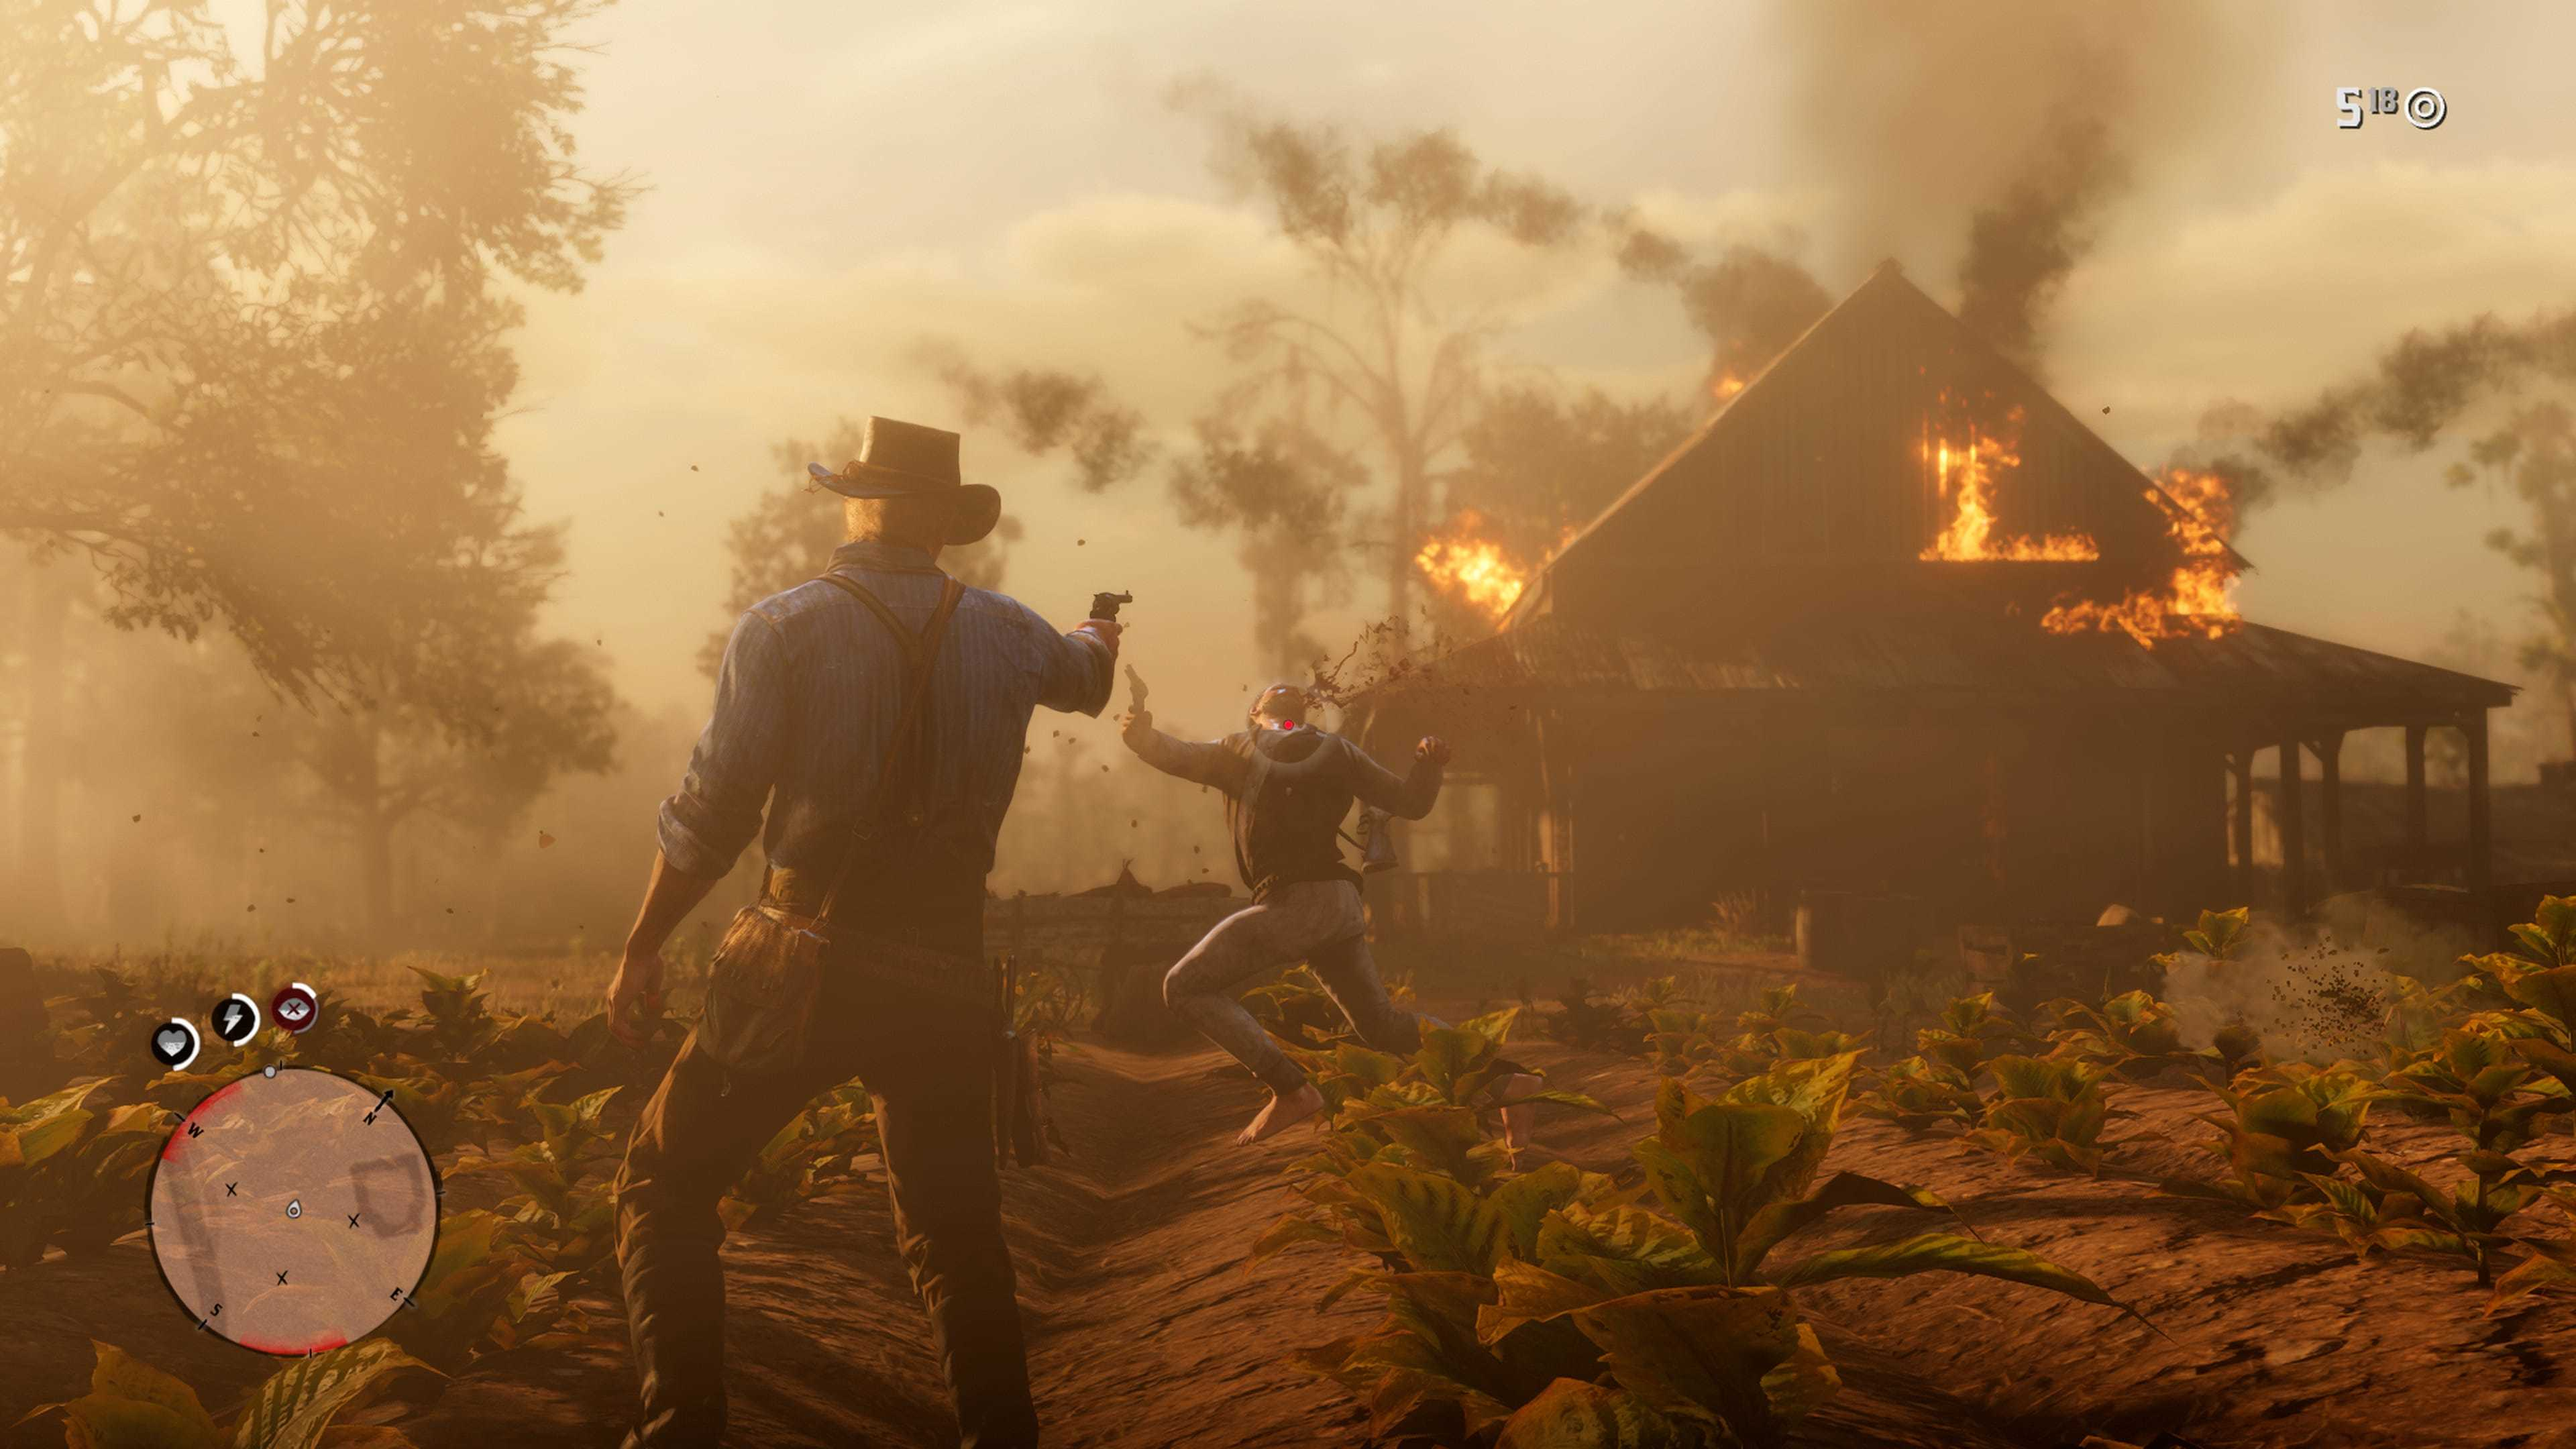 How to Use Unlimited Deadeye Cheat for Red Dead Redemption 2